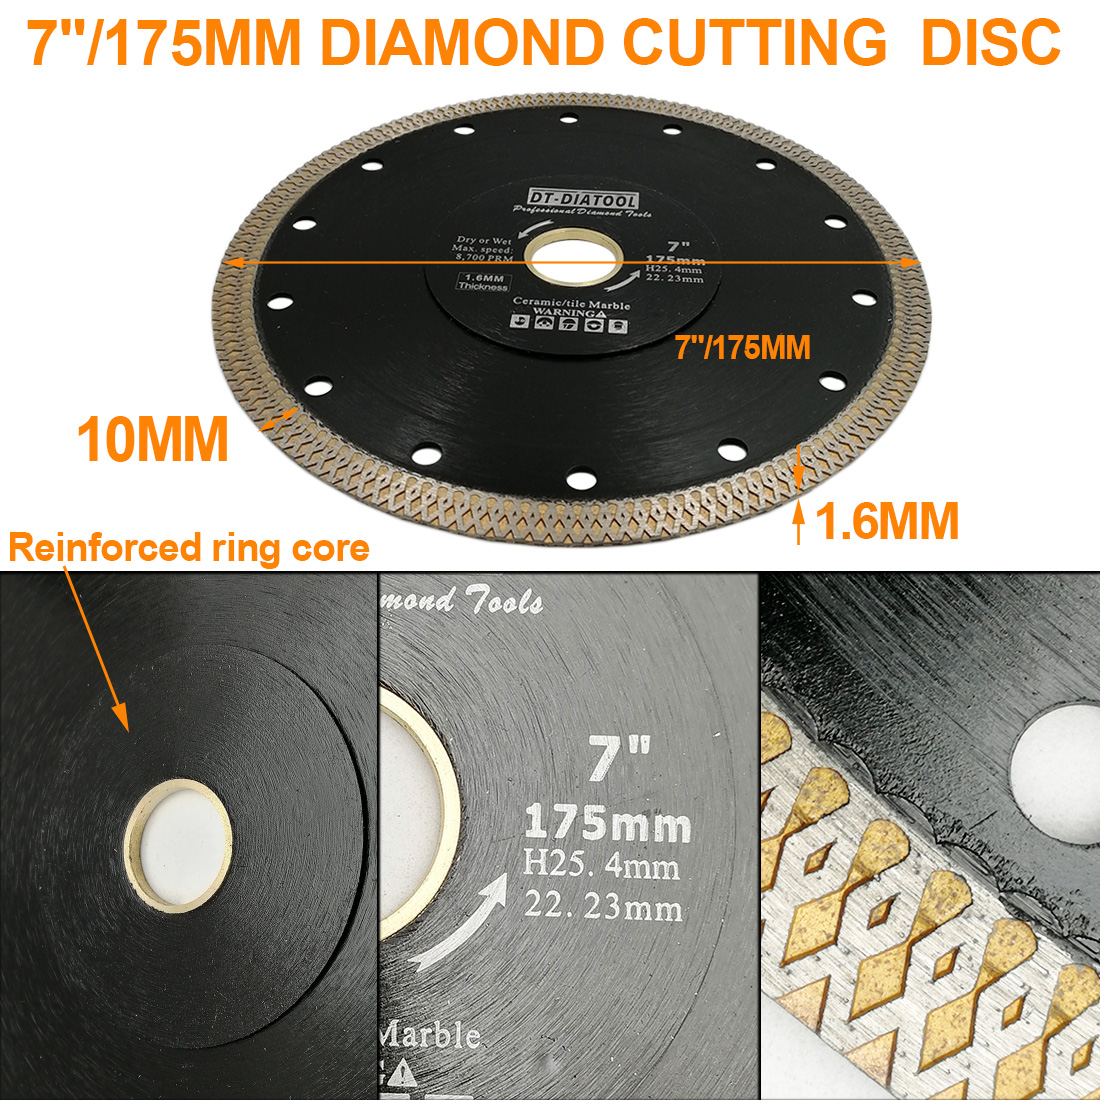 DT-DIATOOL Diamond Cutting Saw-Blades Porcelain Ceramic-Tile Disc-X-Mesh 1pc for Turbo-Rim